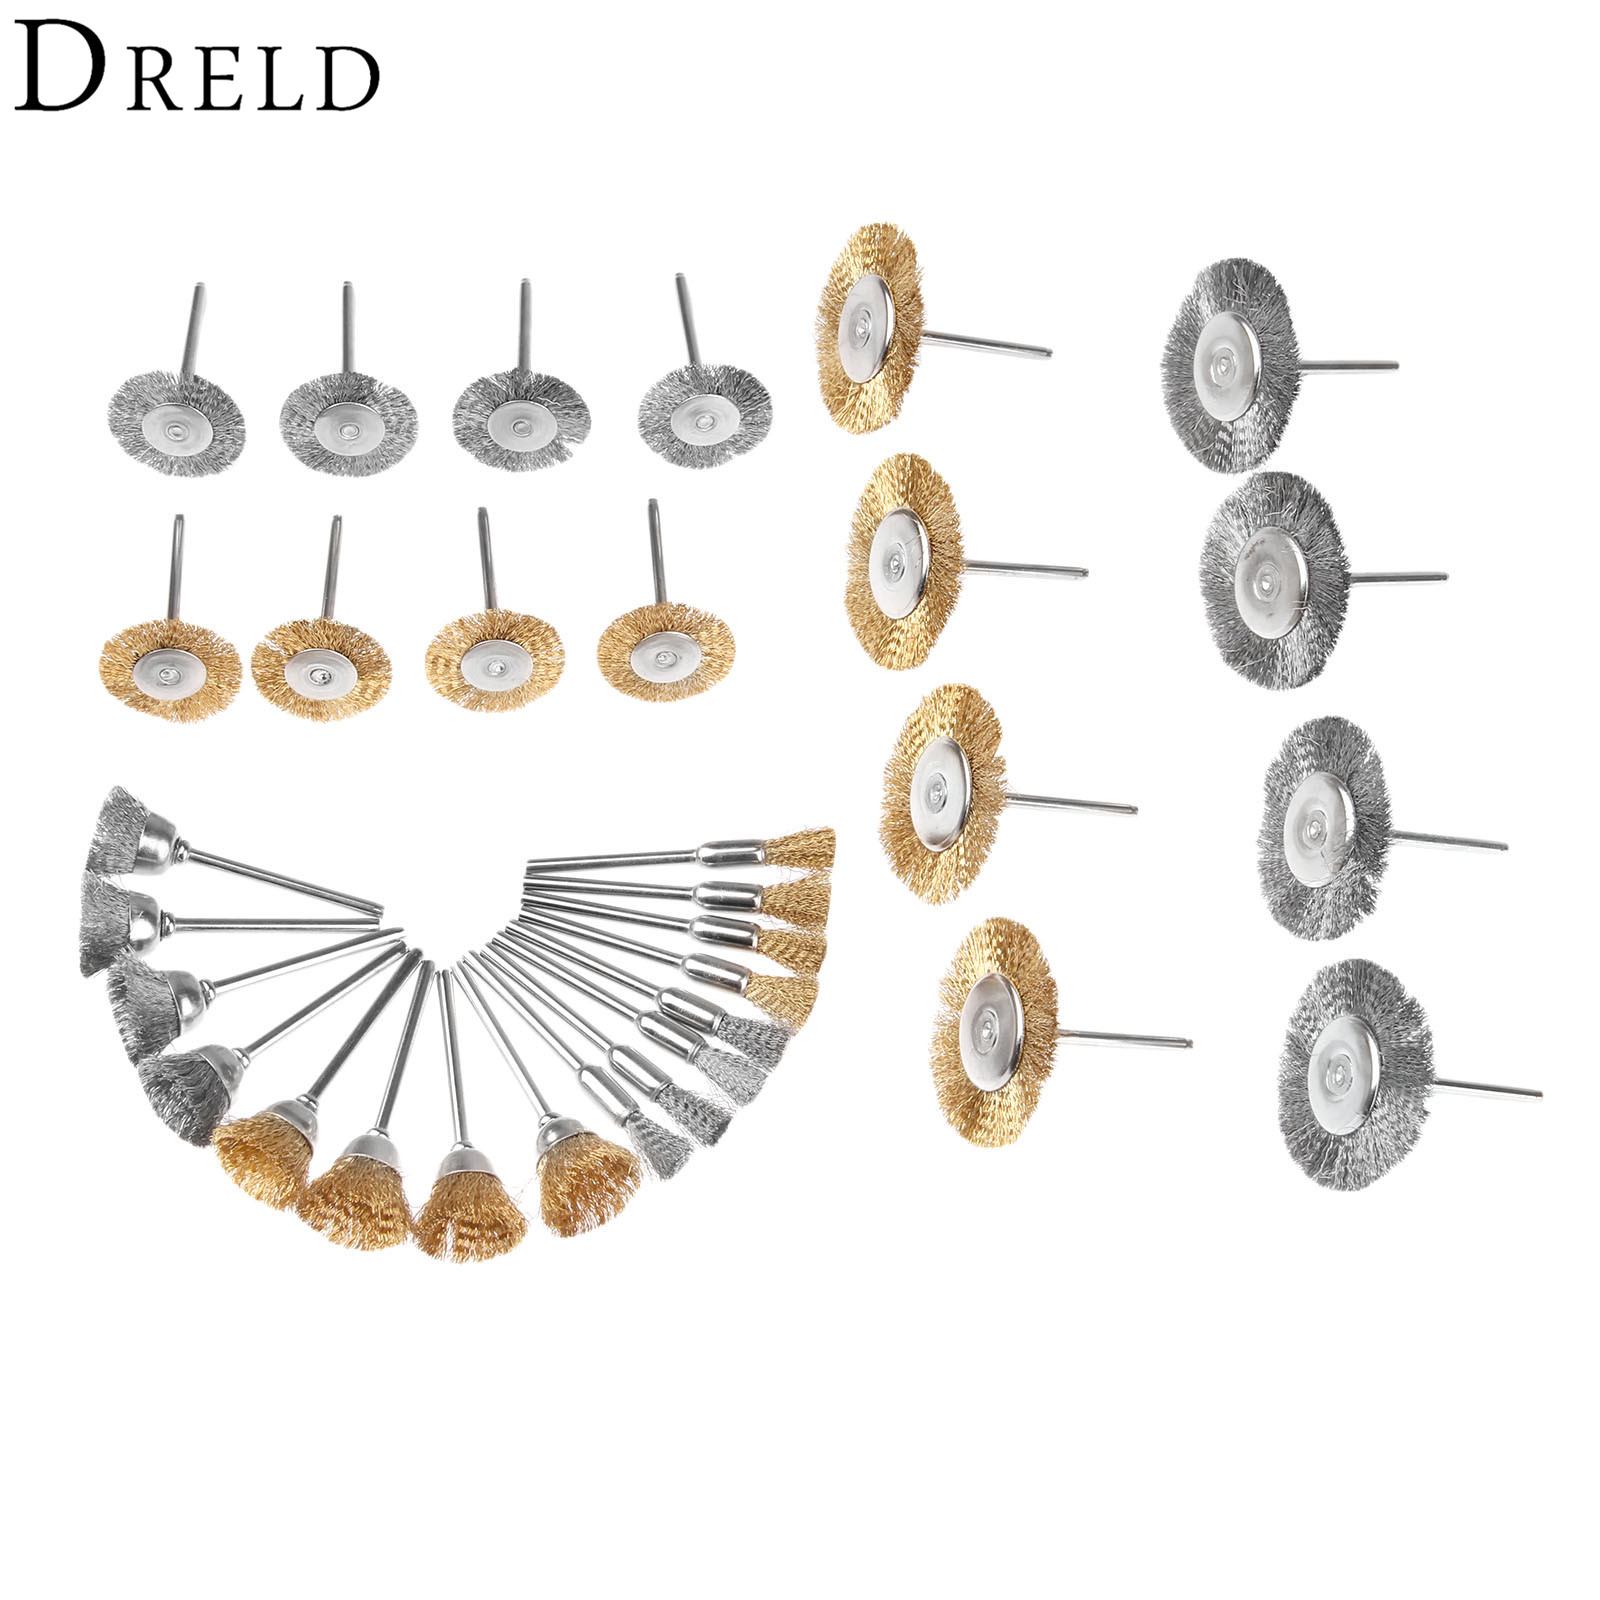 DRELD 32Pcs Dremel Accessories Brass Steel Wire Brush Polishing Wheels Kit L Metal Deburring Grinding Cleaning For Rotary Tools